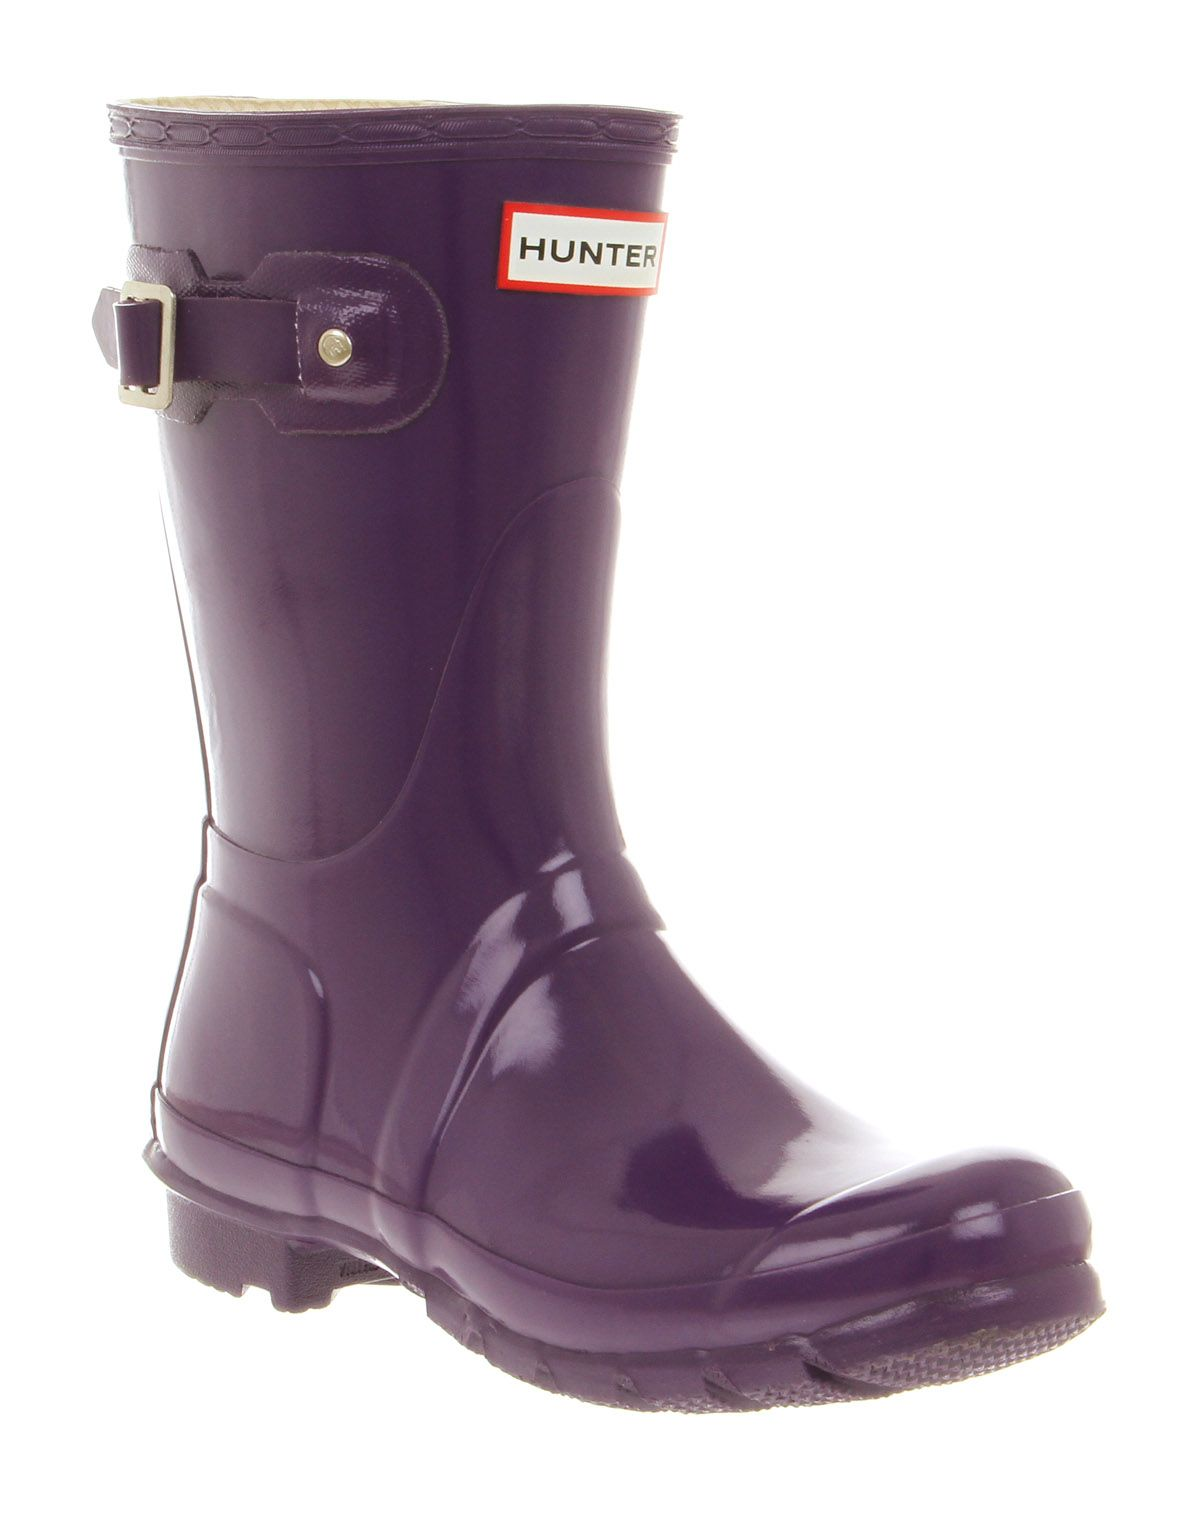 Purple Wellies!!!!!!!